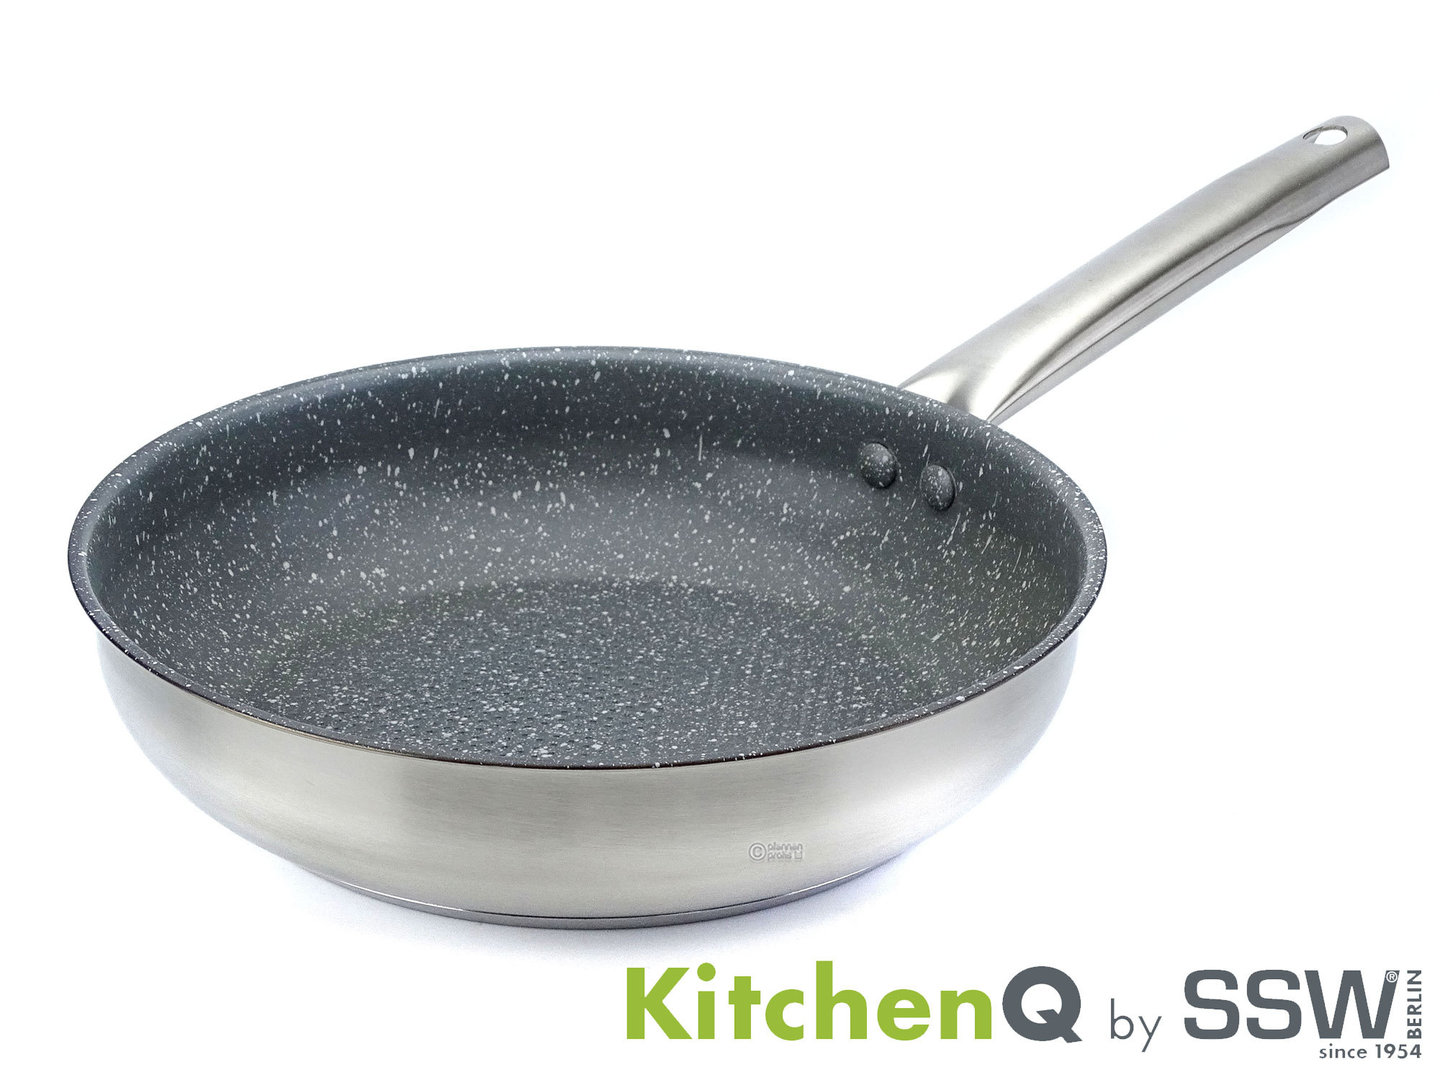 SSW frypan PROFI STEEL 24 cm stainless steel non-stick induction